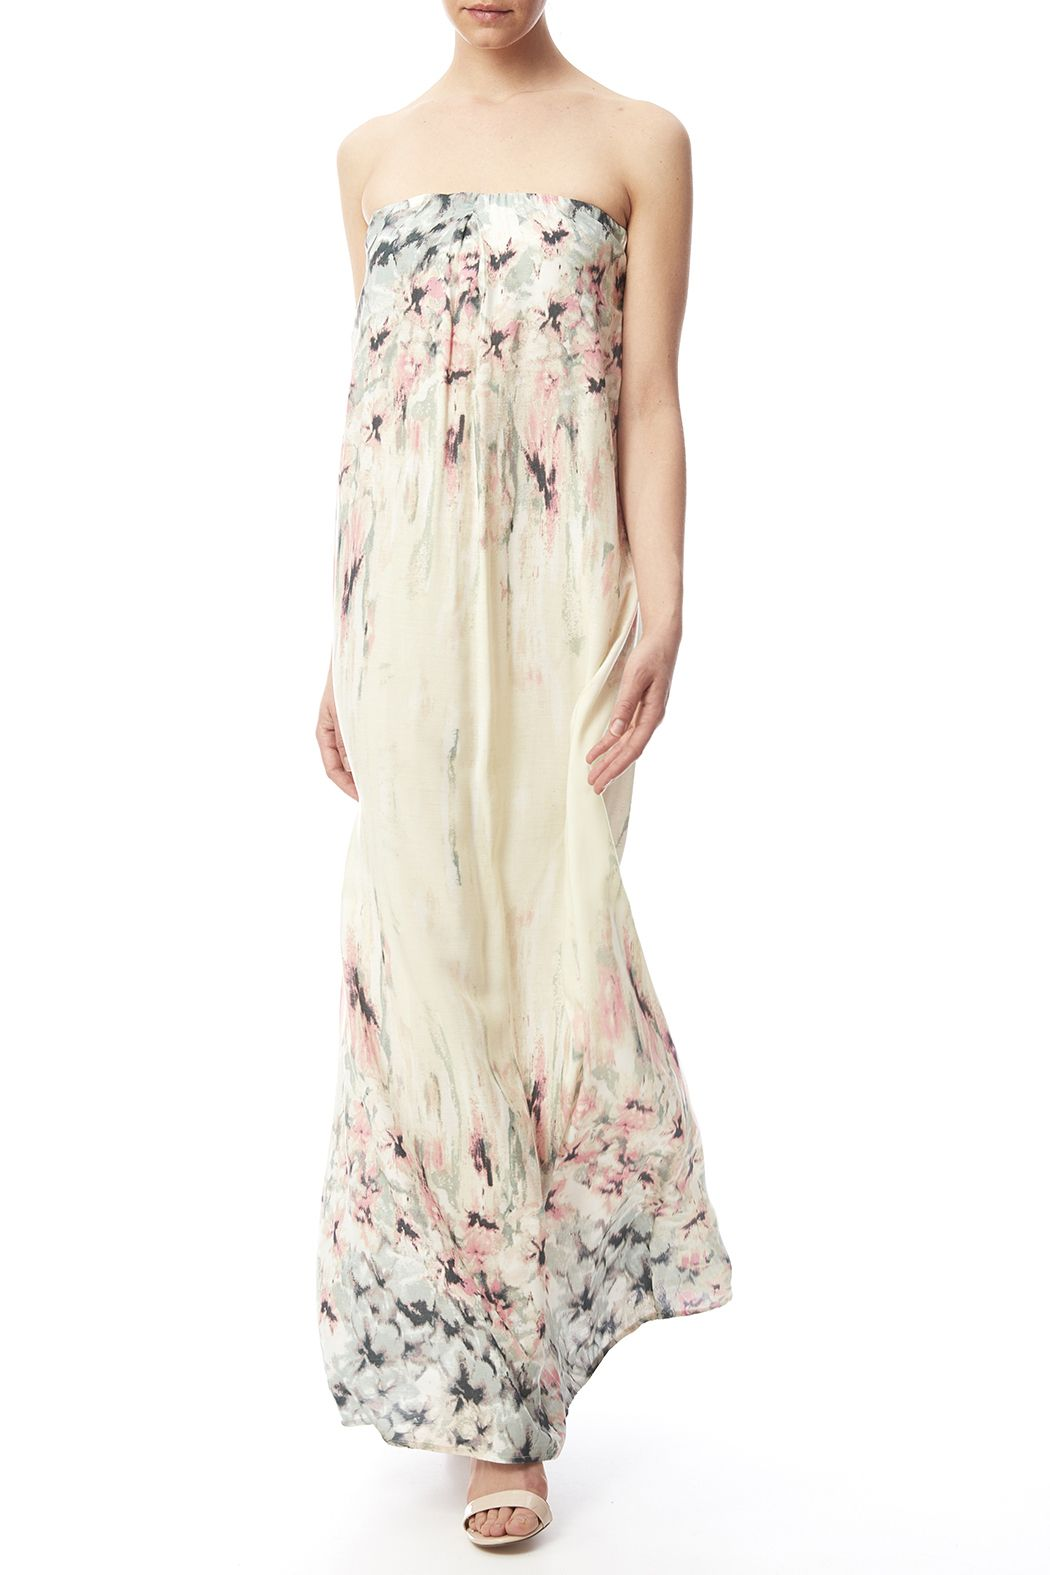 70404a314f0 This printed strapless dress is the perfect piece to pack for your next  vacation! Featuring